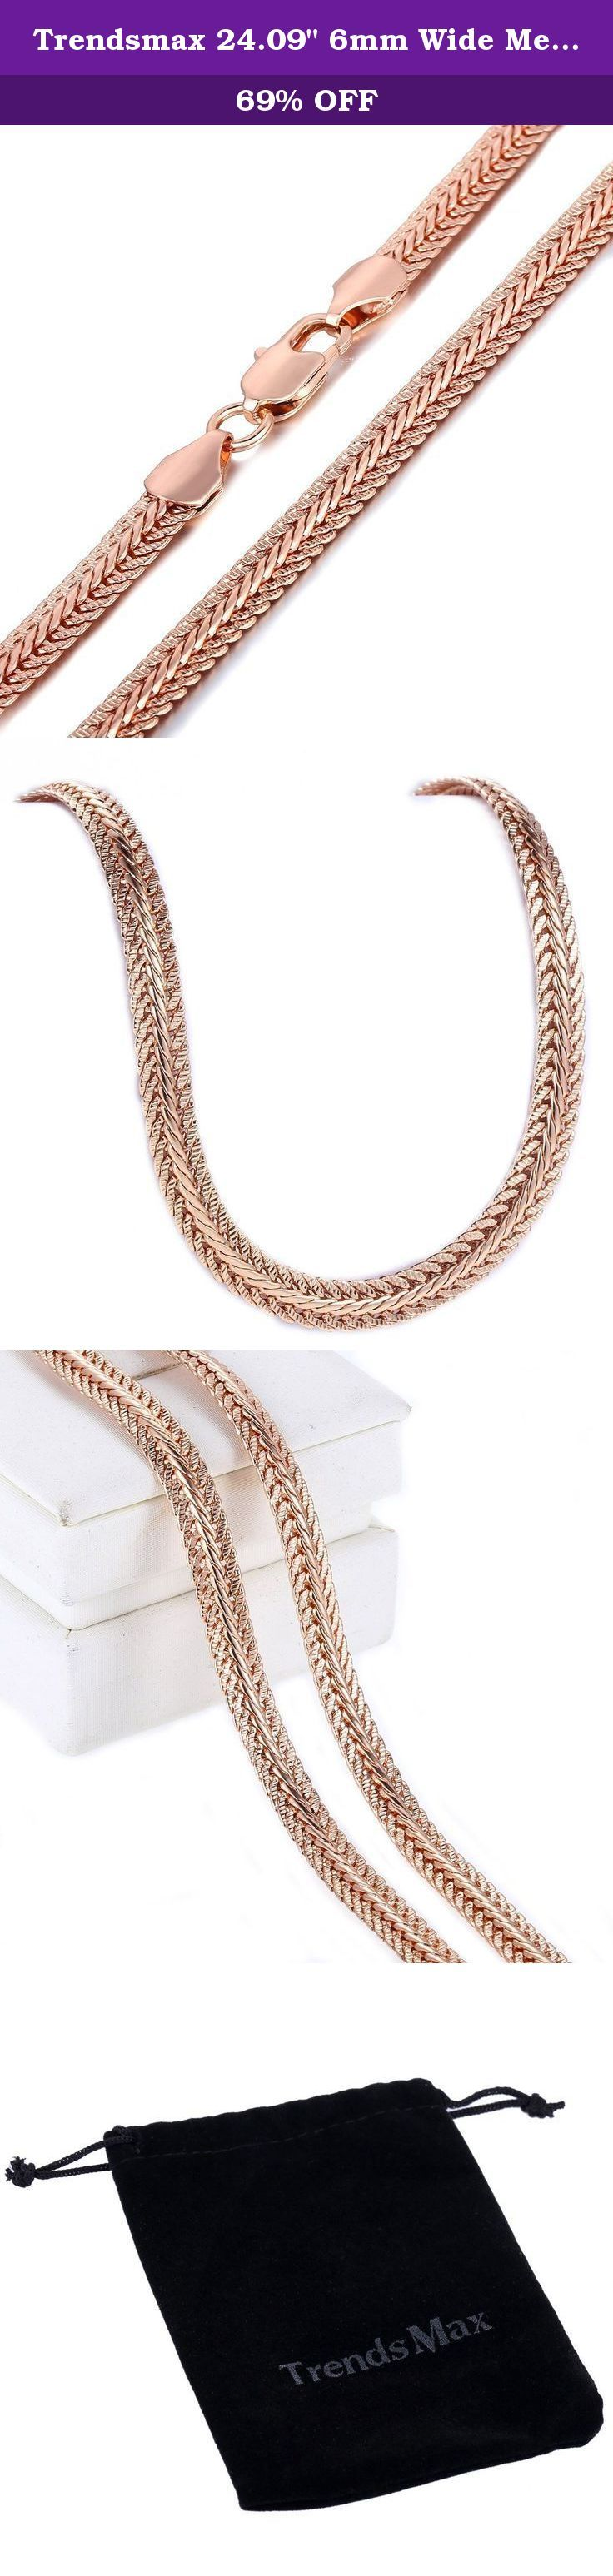 """Trendsmax 24.09"""" 6mm Wide Men Women Chain Hammered Snake Bone Rose Gold Plated Necklace. Fashion Design Trendsmax Jewelry 6mm Wide Men Women Chain Hammered Snake Bone Gold Plated Necklace. Daily wear, It's perfect gift for Birthday, Anniversary, Christmas."""